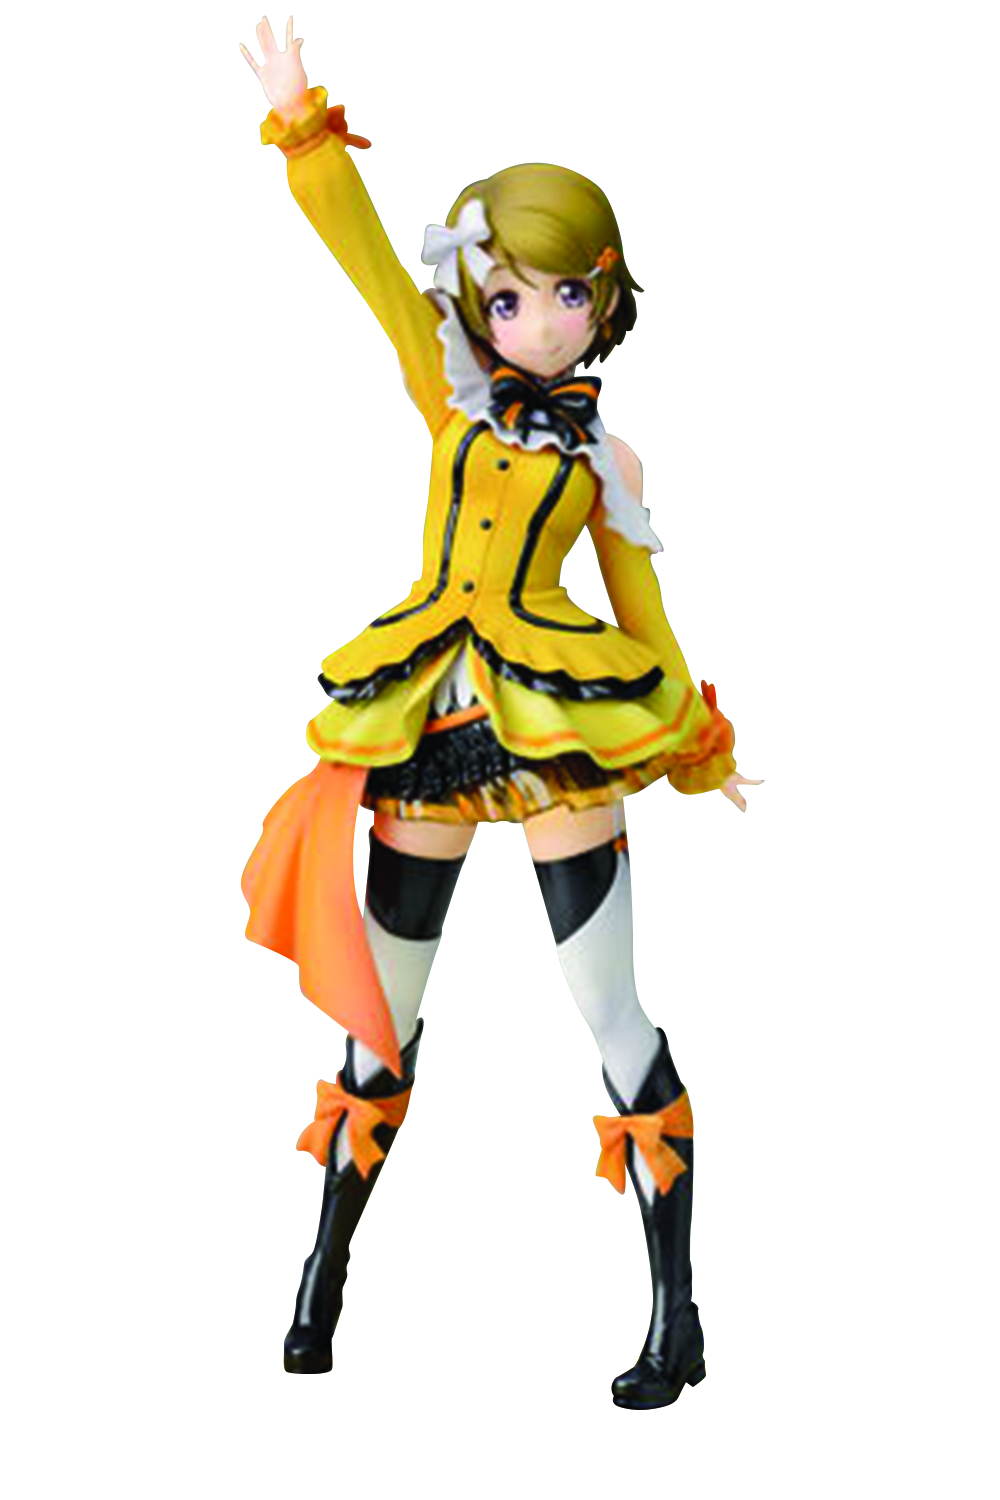 LOVE LIVE HANAYO KOIZUMI BIRTHDAY FIGURE PROJECT PVC FIG